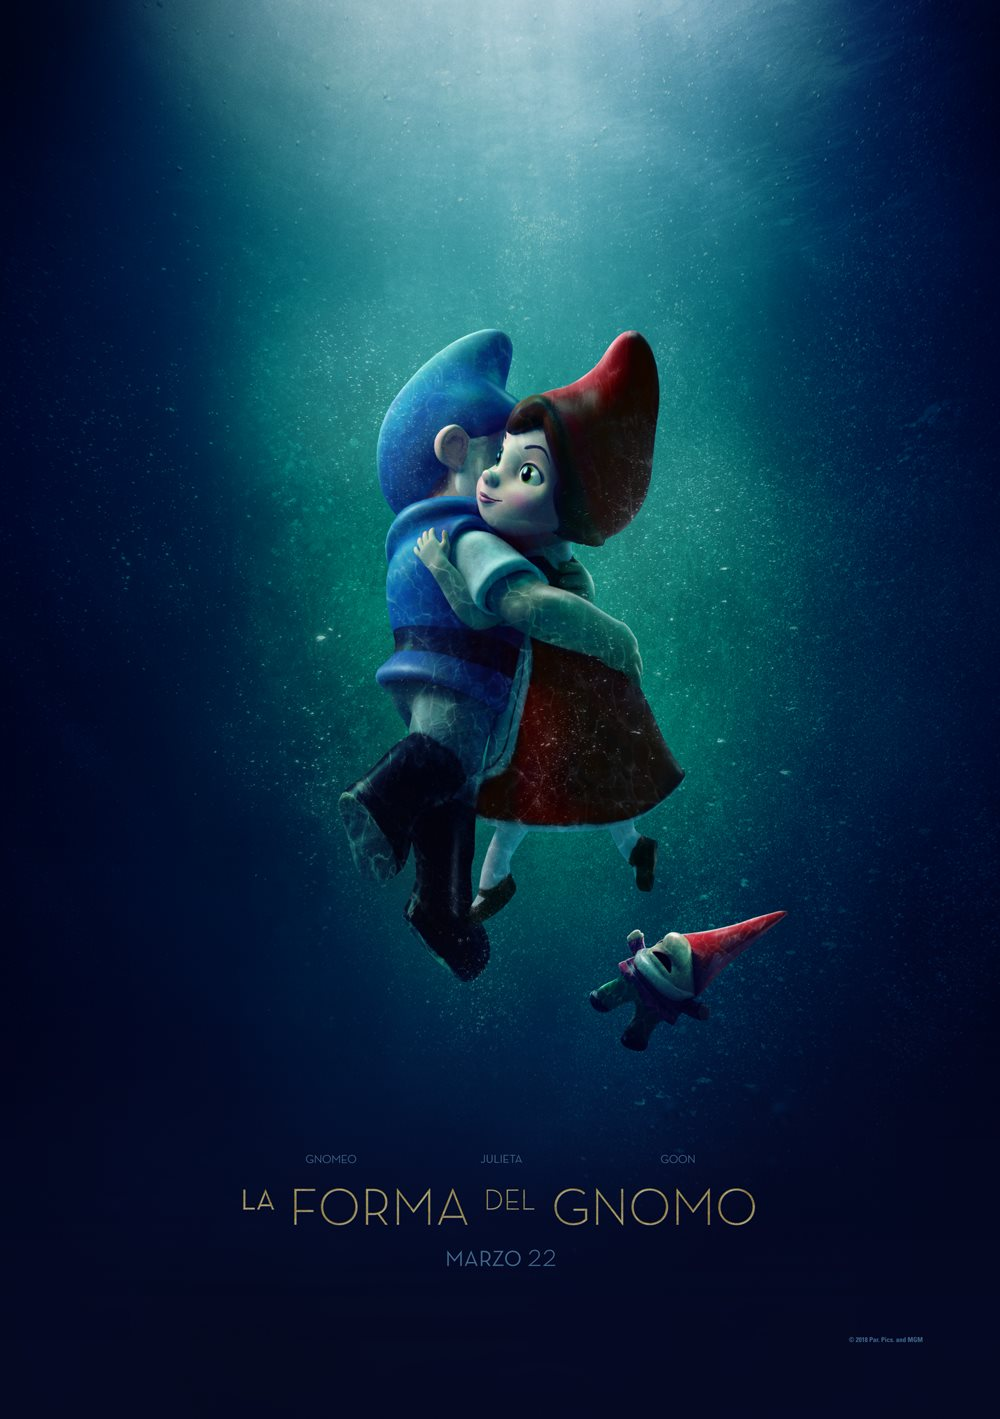 This Sherlock Gnomes Poster Is The Worst Movie Poster of 2018